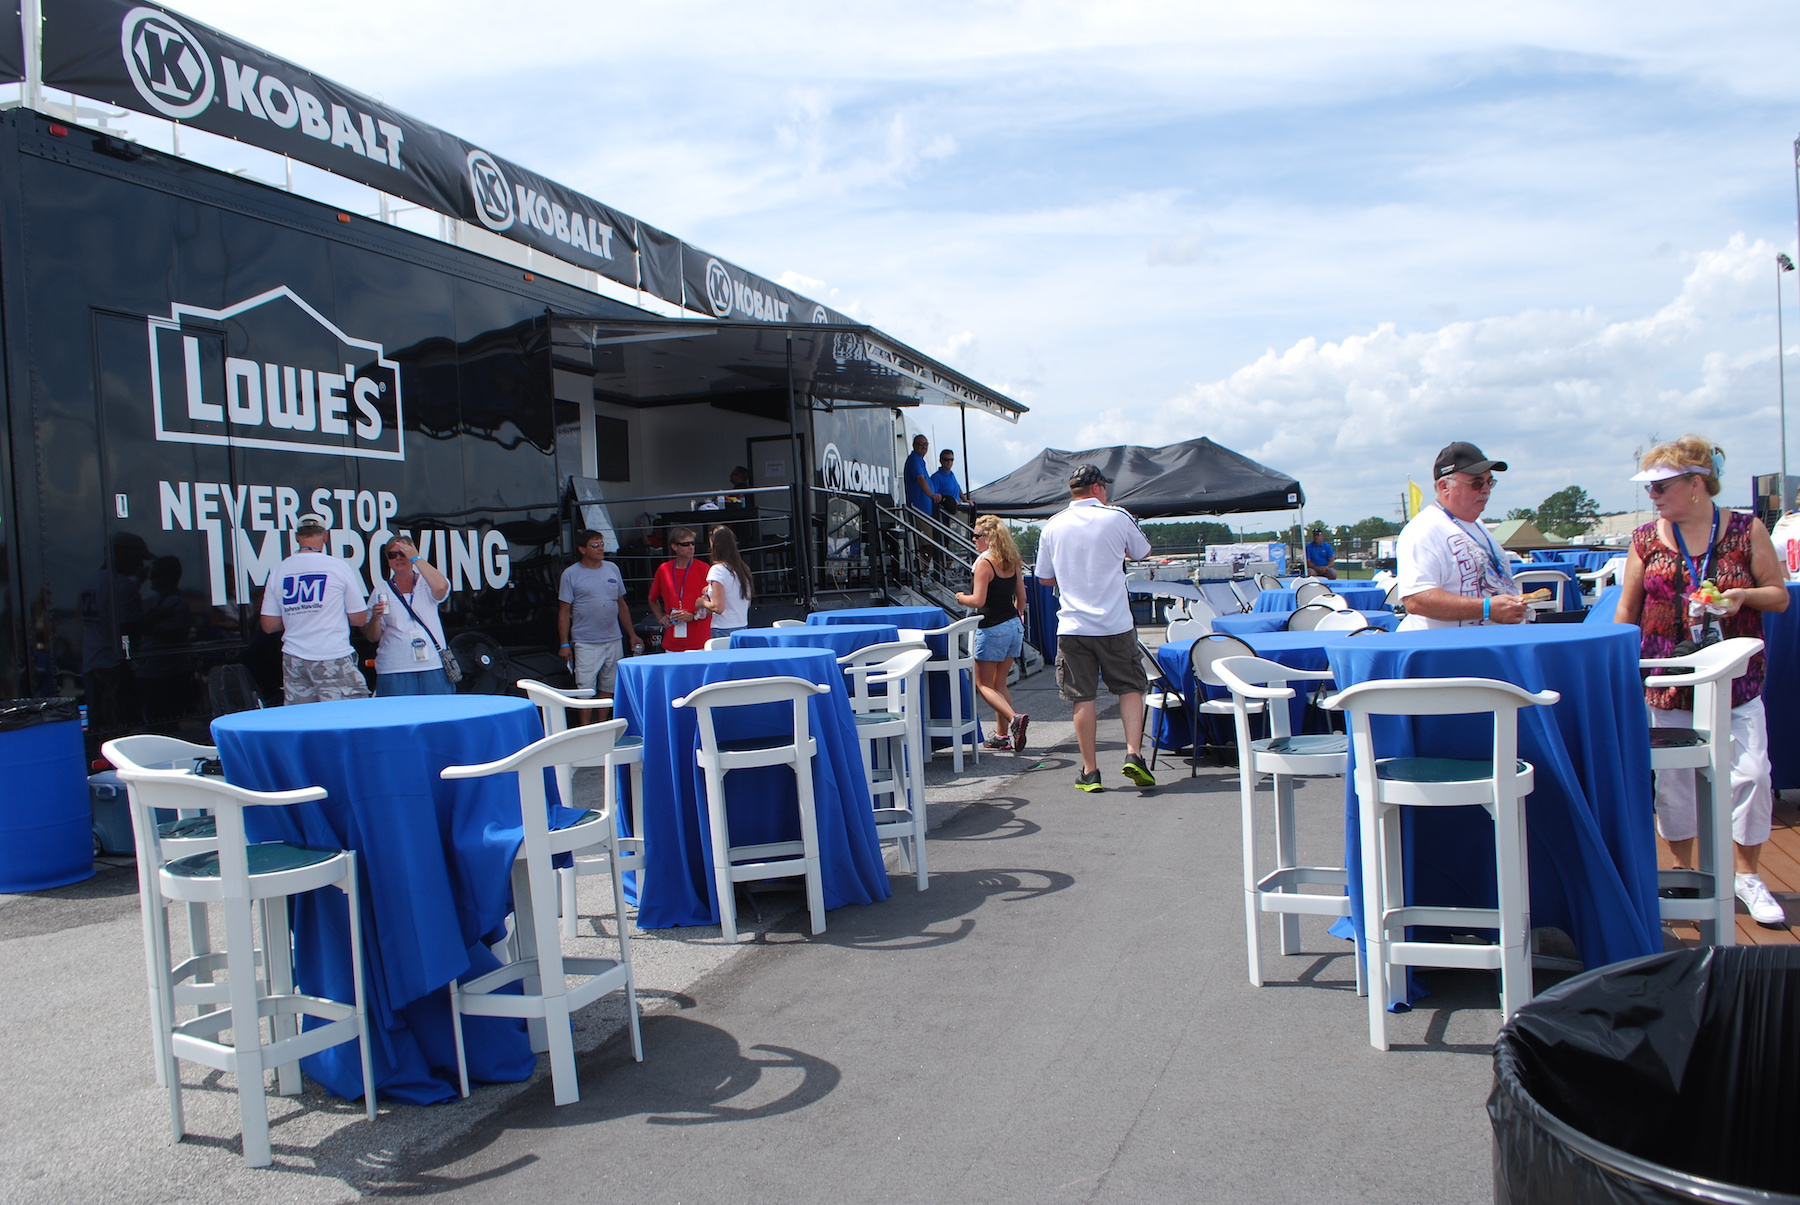 corporate event tailgating trailer